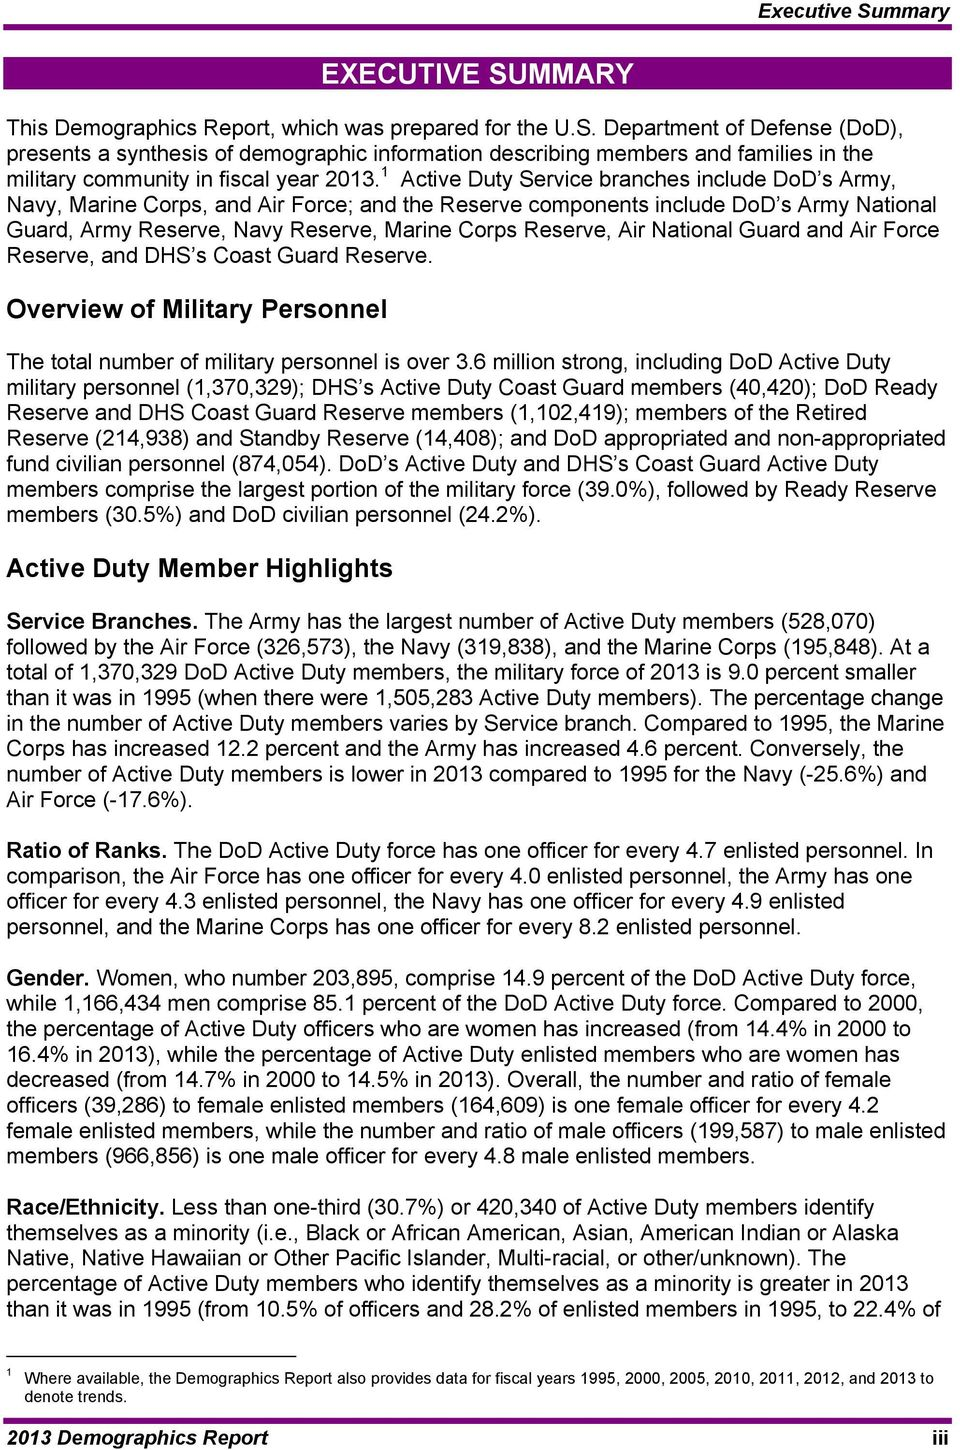 Air National Guard and Air Force Reserve, and DHS s Coast Guard Reserve. Overview of Military Personnel The total number of military personnel is over 3.